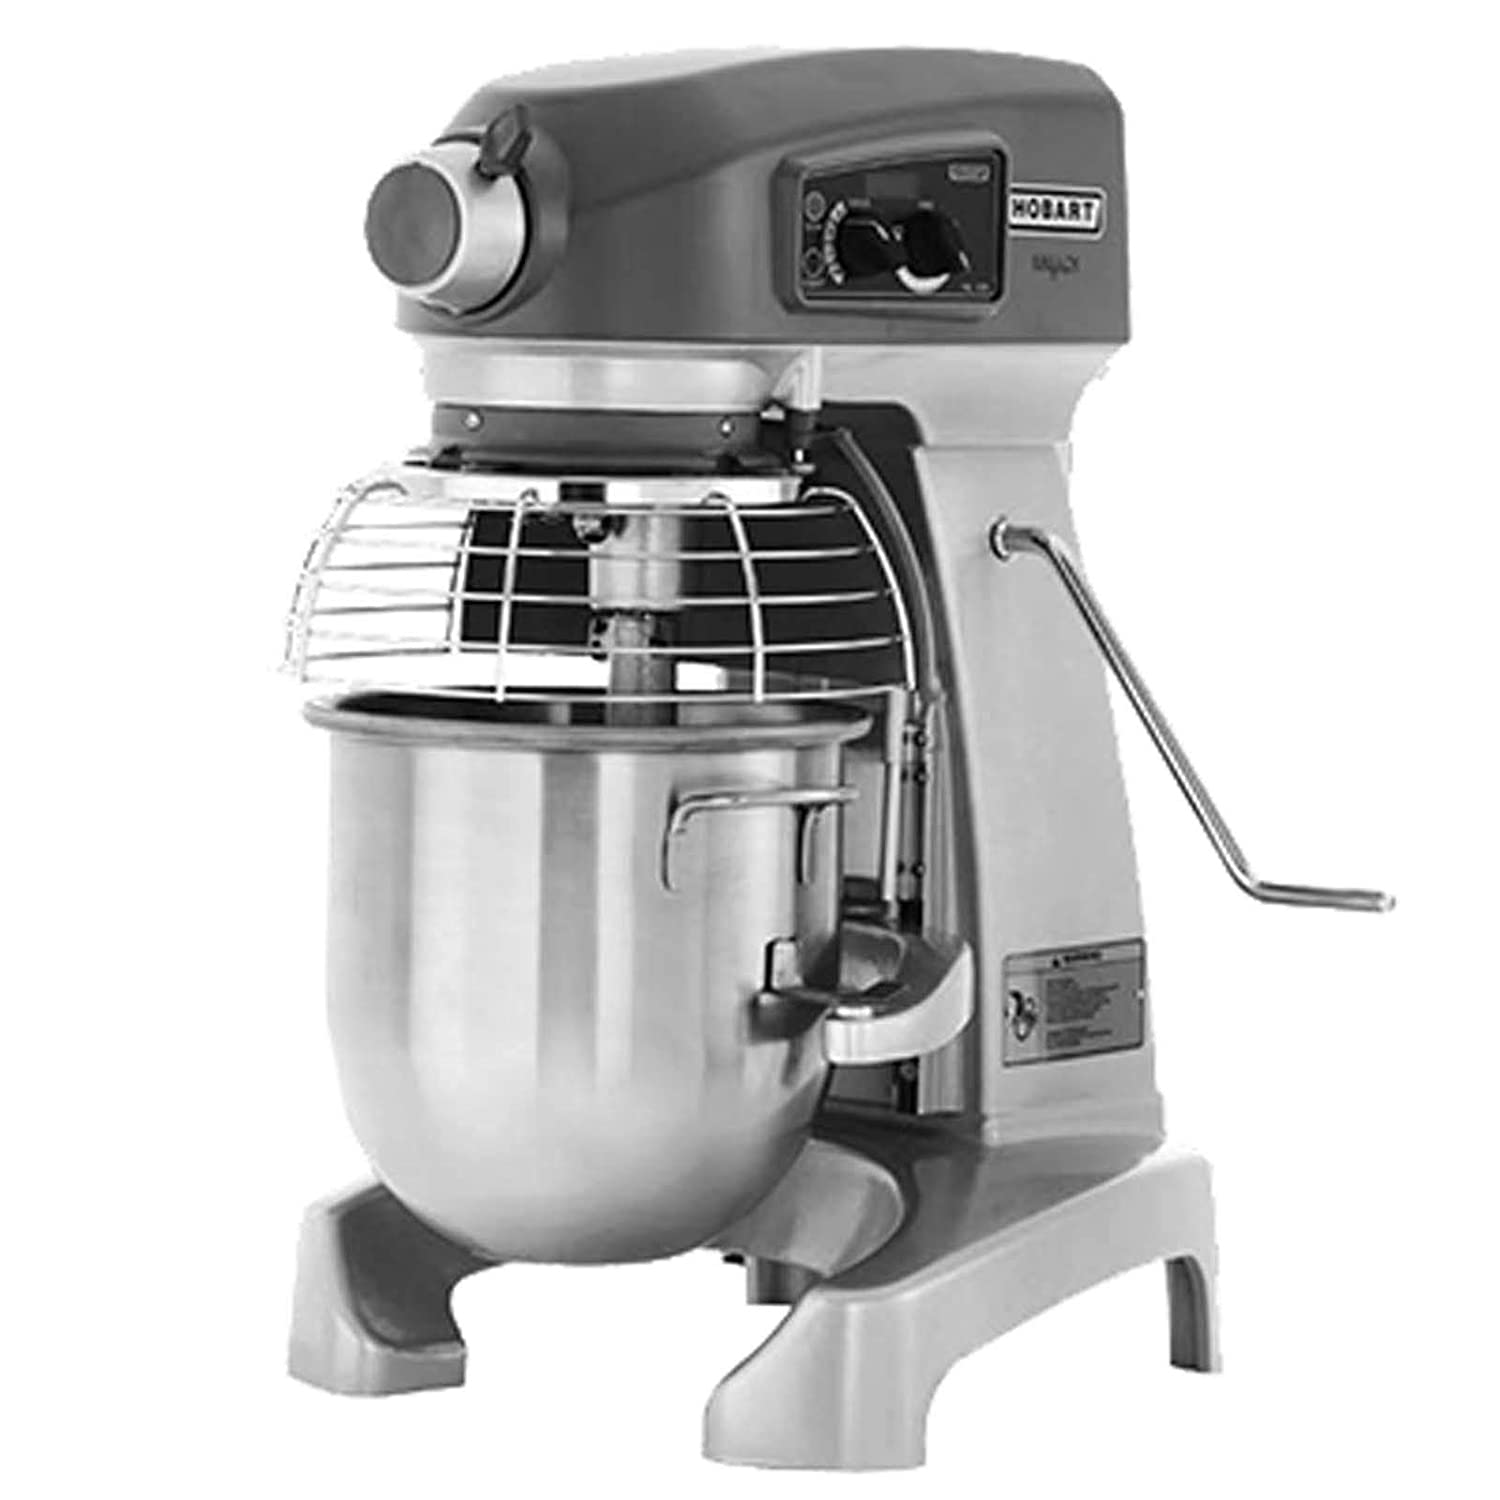 Amazon.com: Hobart HL120-1STD Bench Type 12 Quart Planetary Mixer: Electric Stand Mixers: Kitchen & Dining